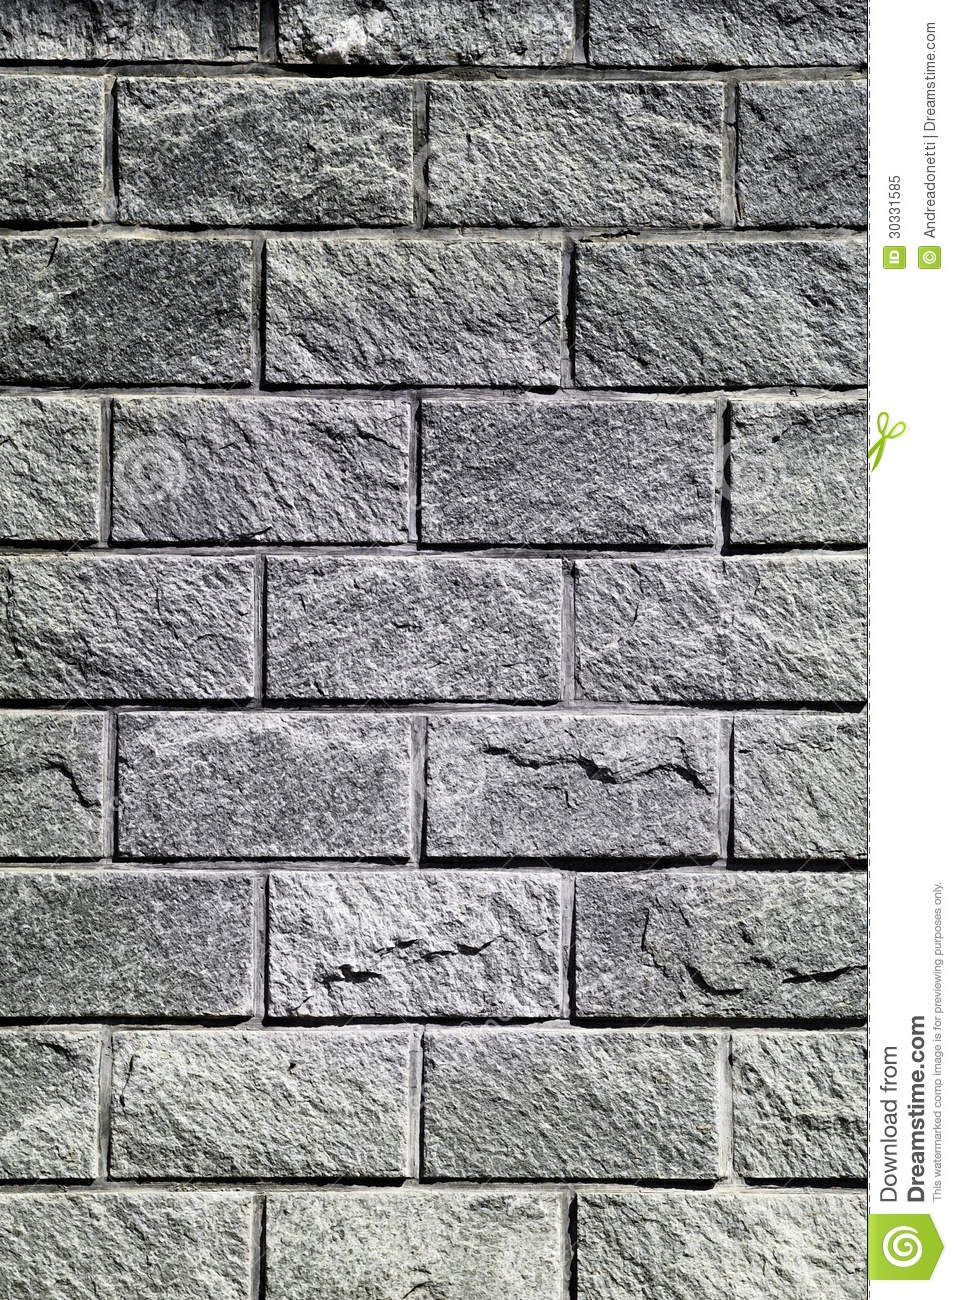 Marvelous Neat Cut Stone Brick Wall